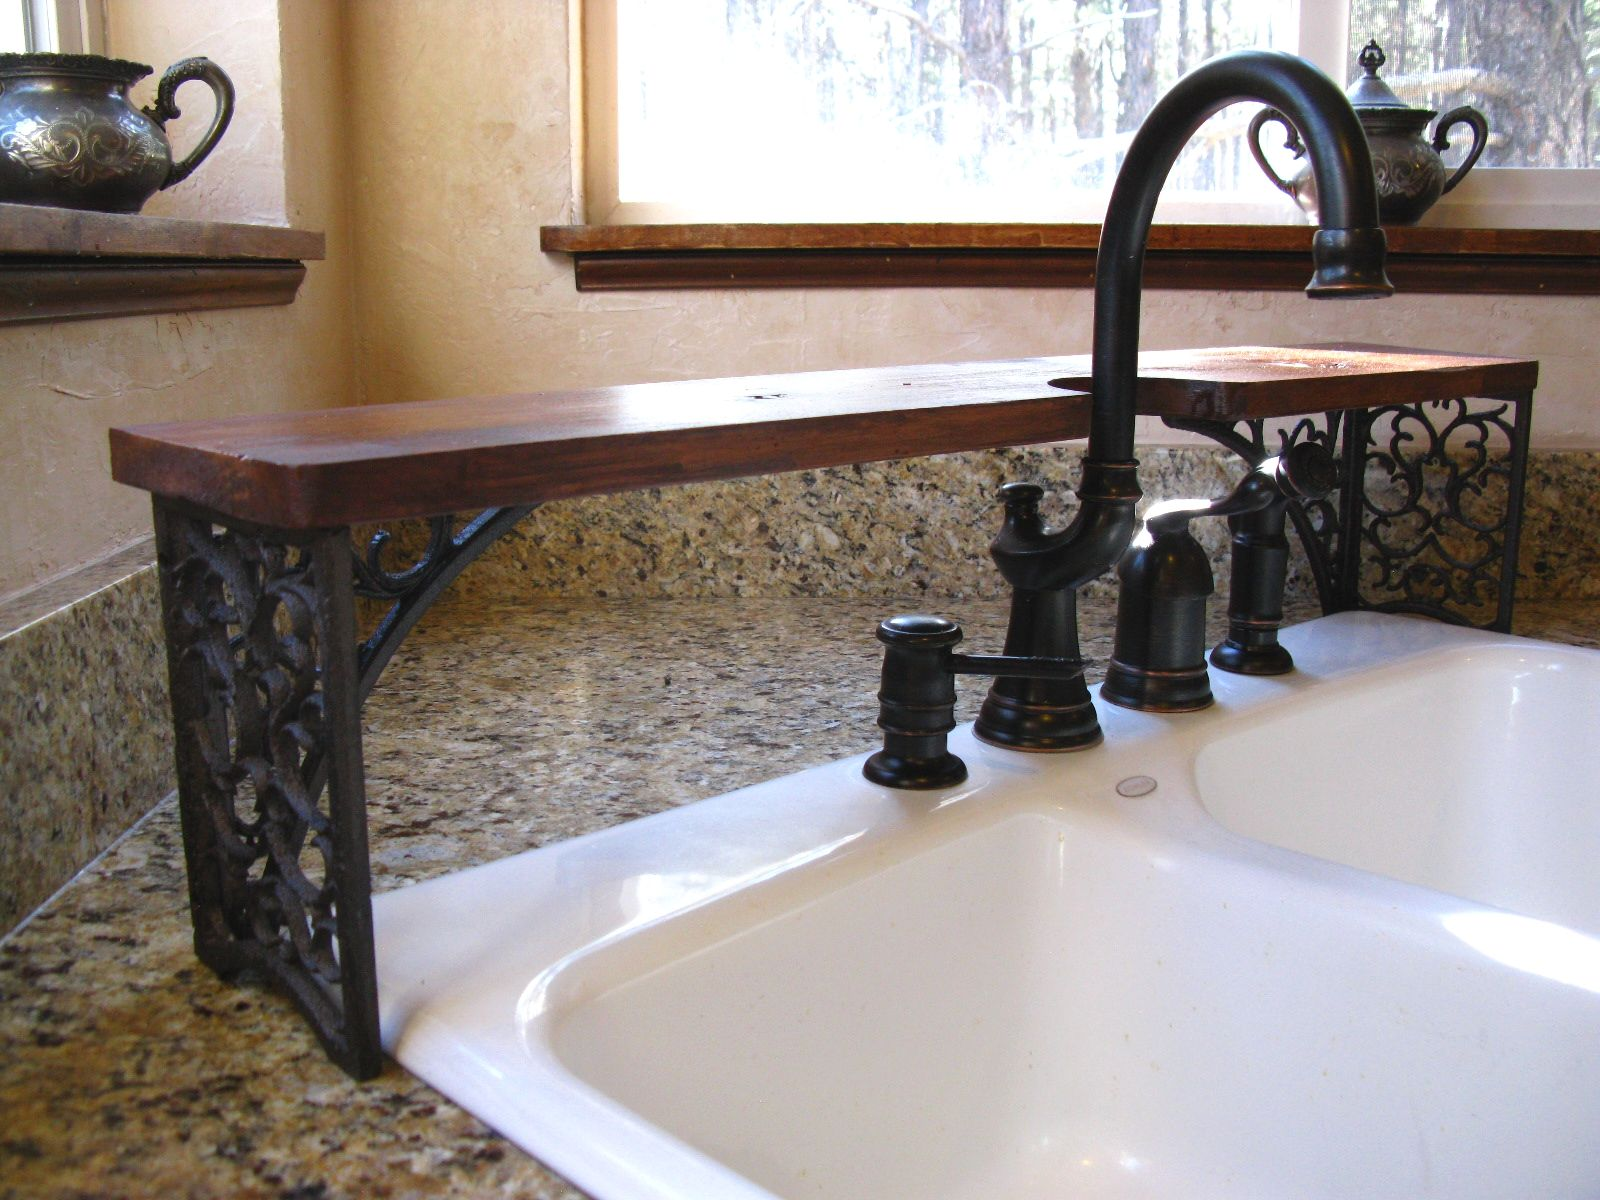 Over The Sink Shelf Cutout Galley Kitchen Faucet Wrought Iron Wood Detail Tuscan Old World